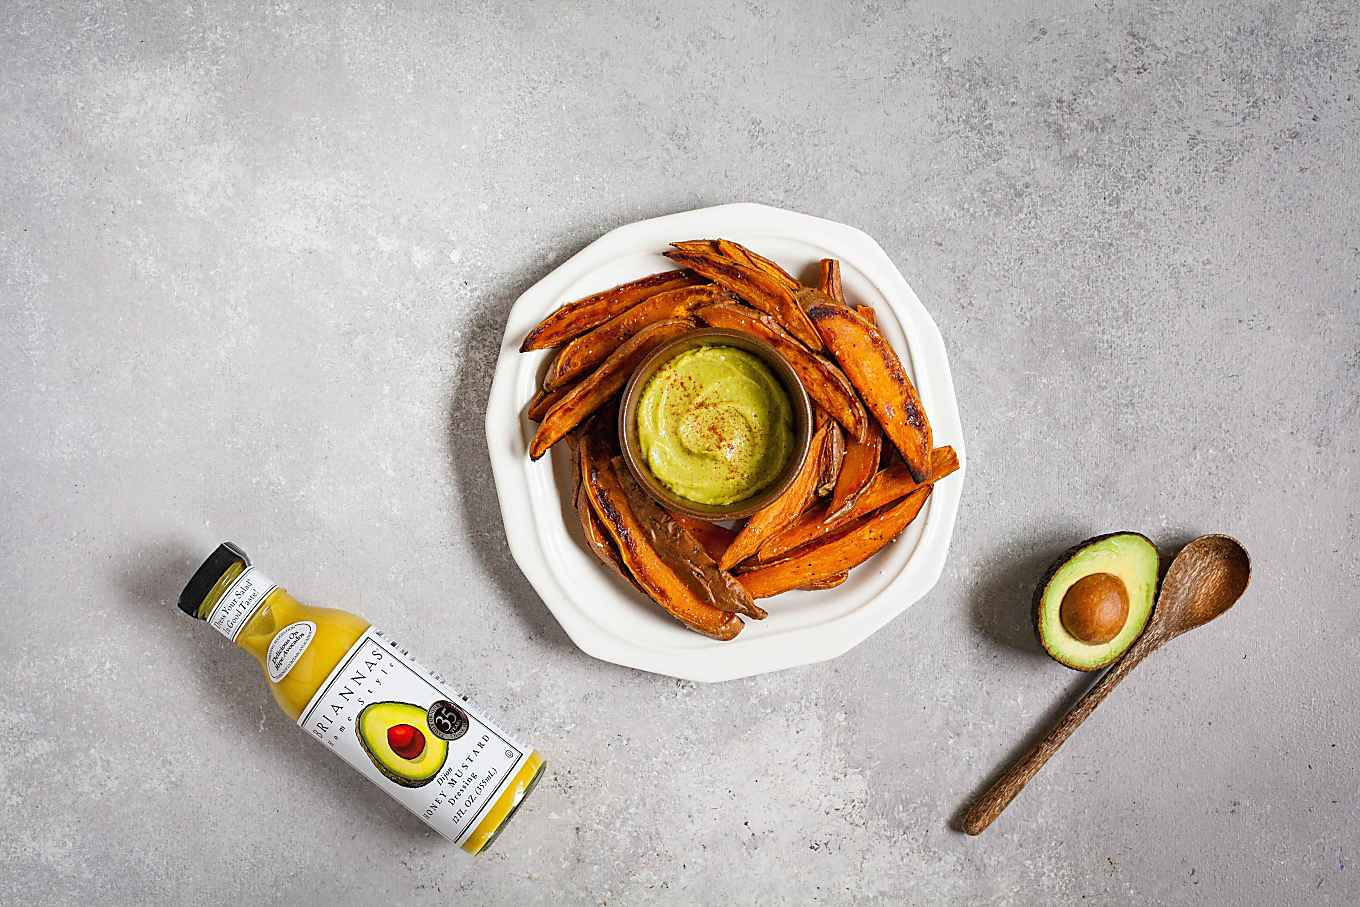 image of plate with sweet potato wedges with a small bowl of spicy honey mustard in middle. Briannas fine salad dressing and wooden spoon next to avocado on table